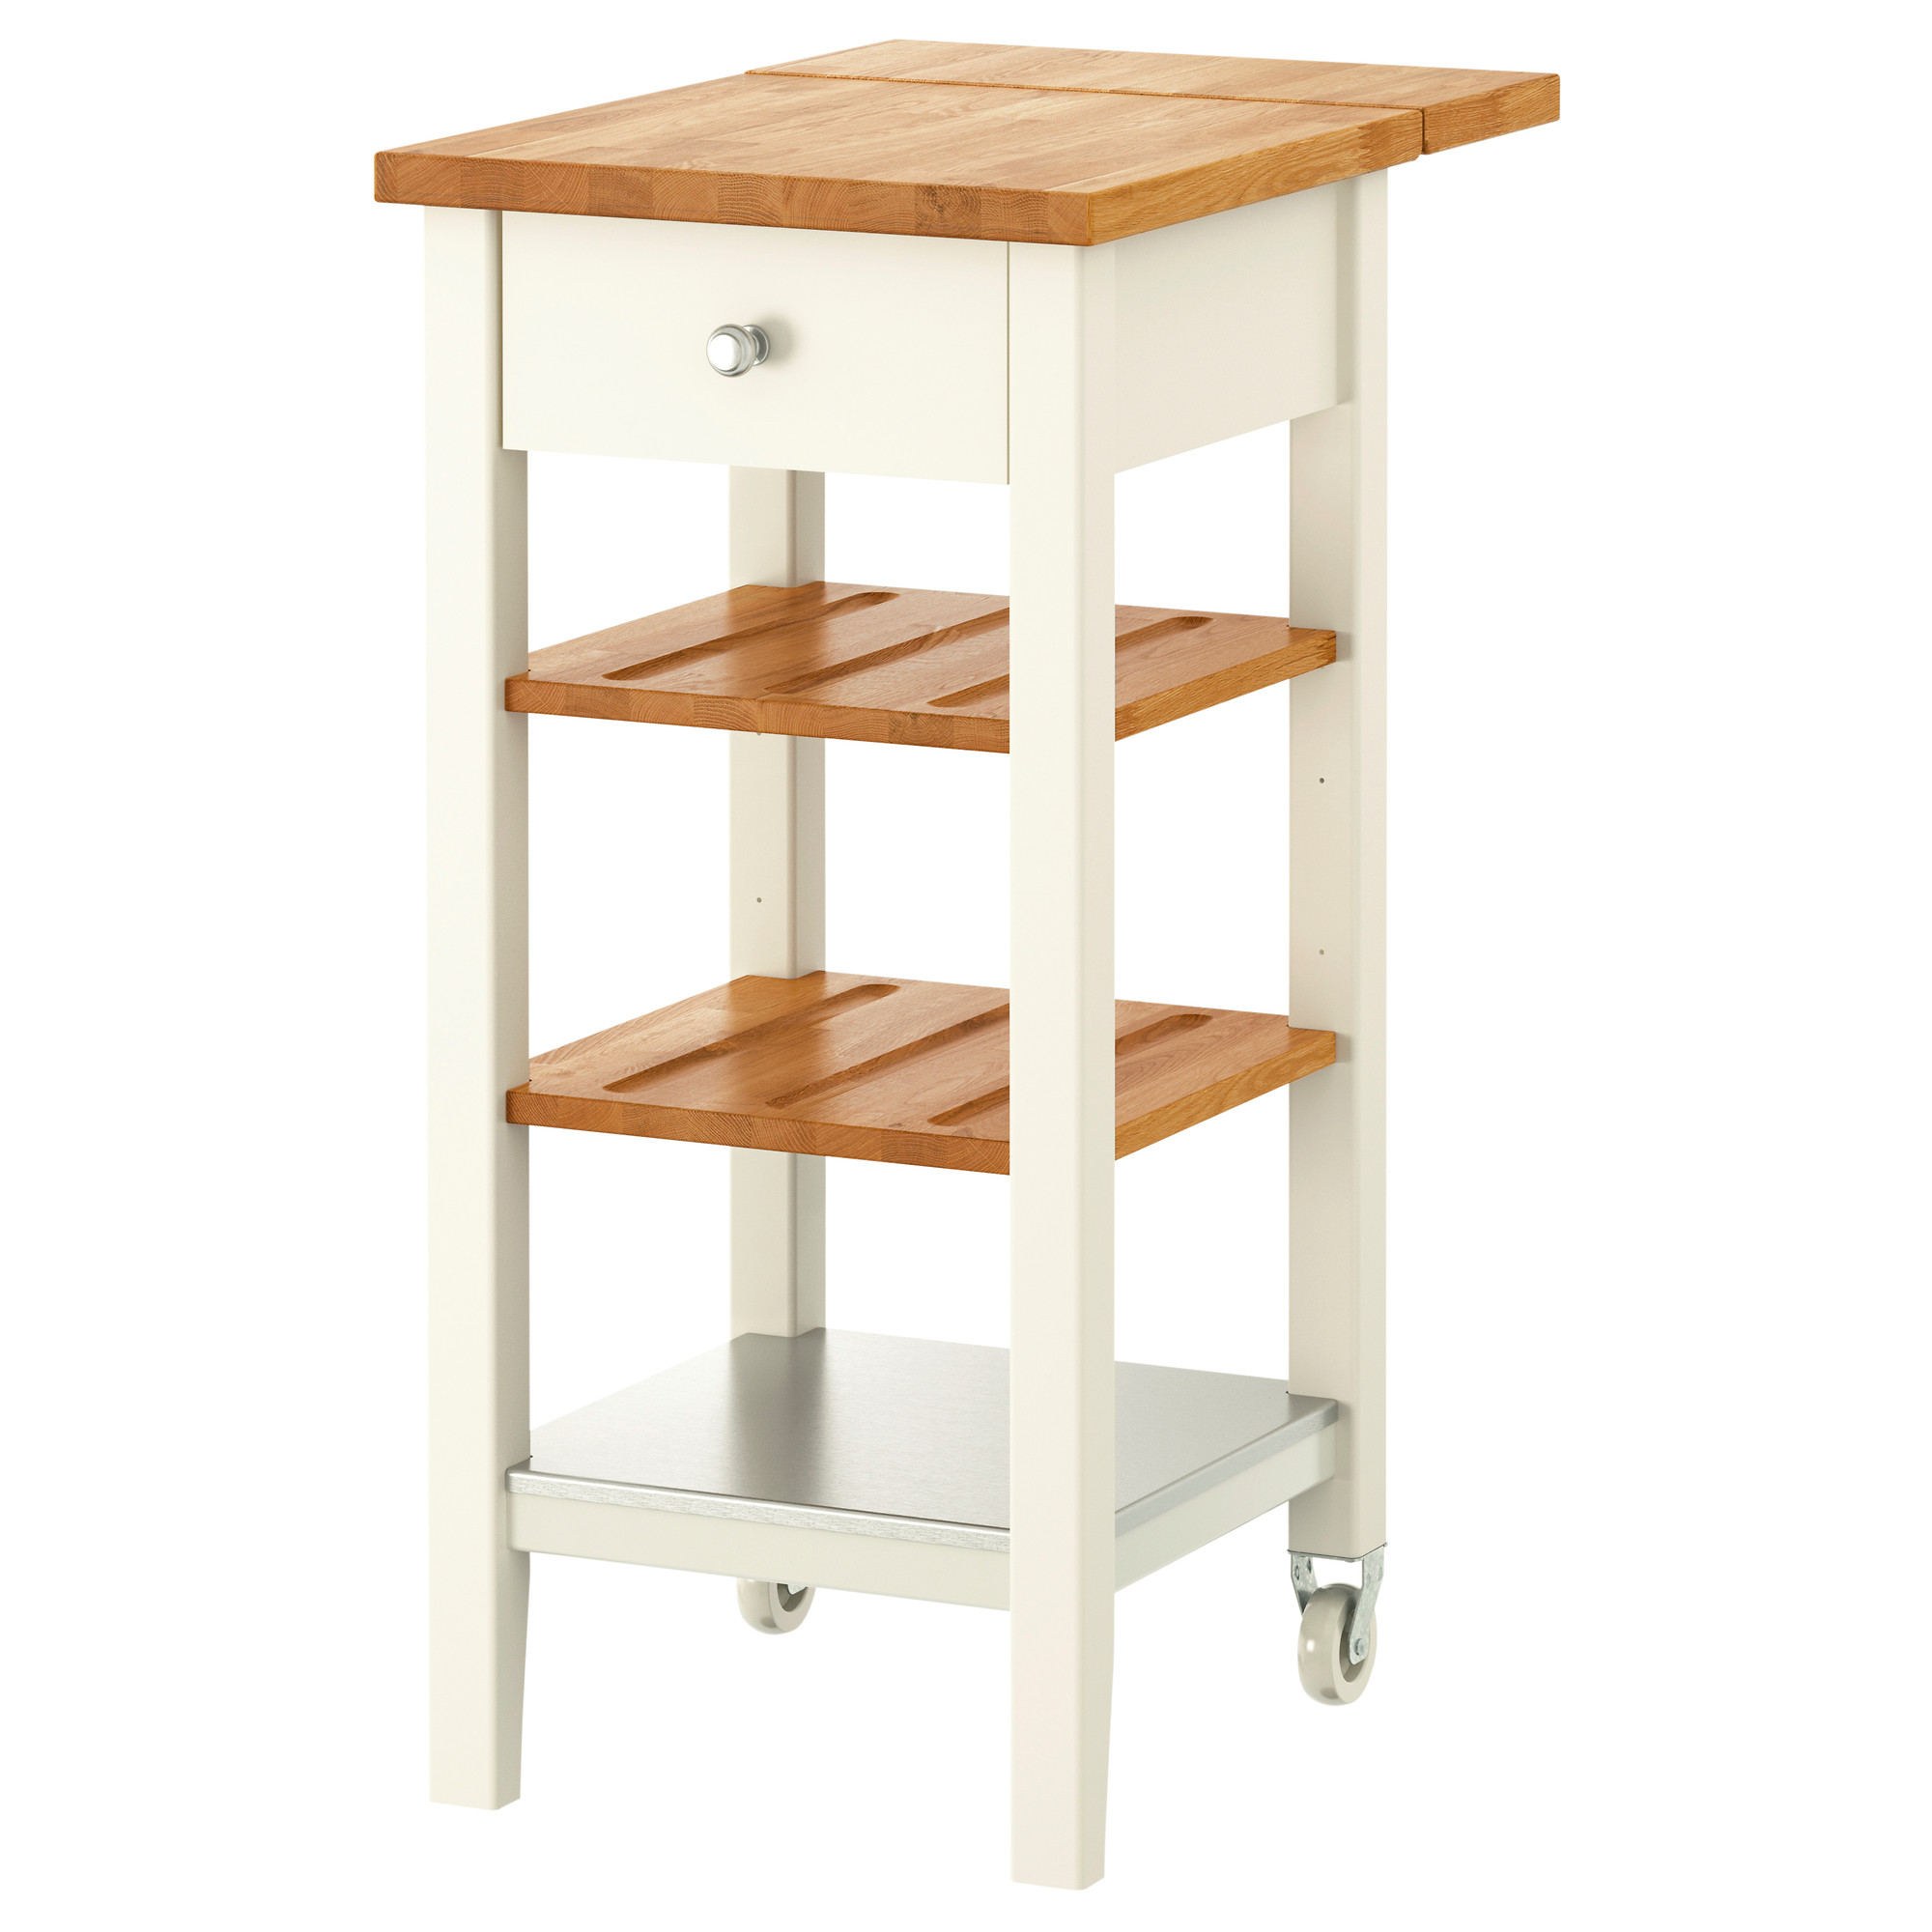 Stenstorp Kitchen Island | Bench for Kitchen Island | Ikea Kitchen Islands with Seating